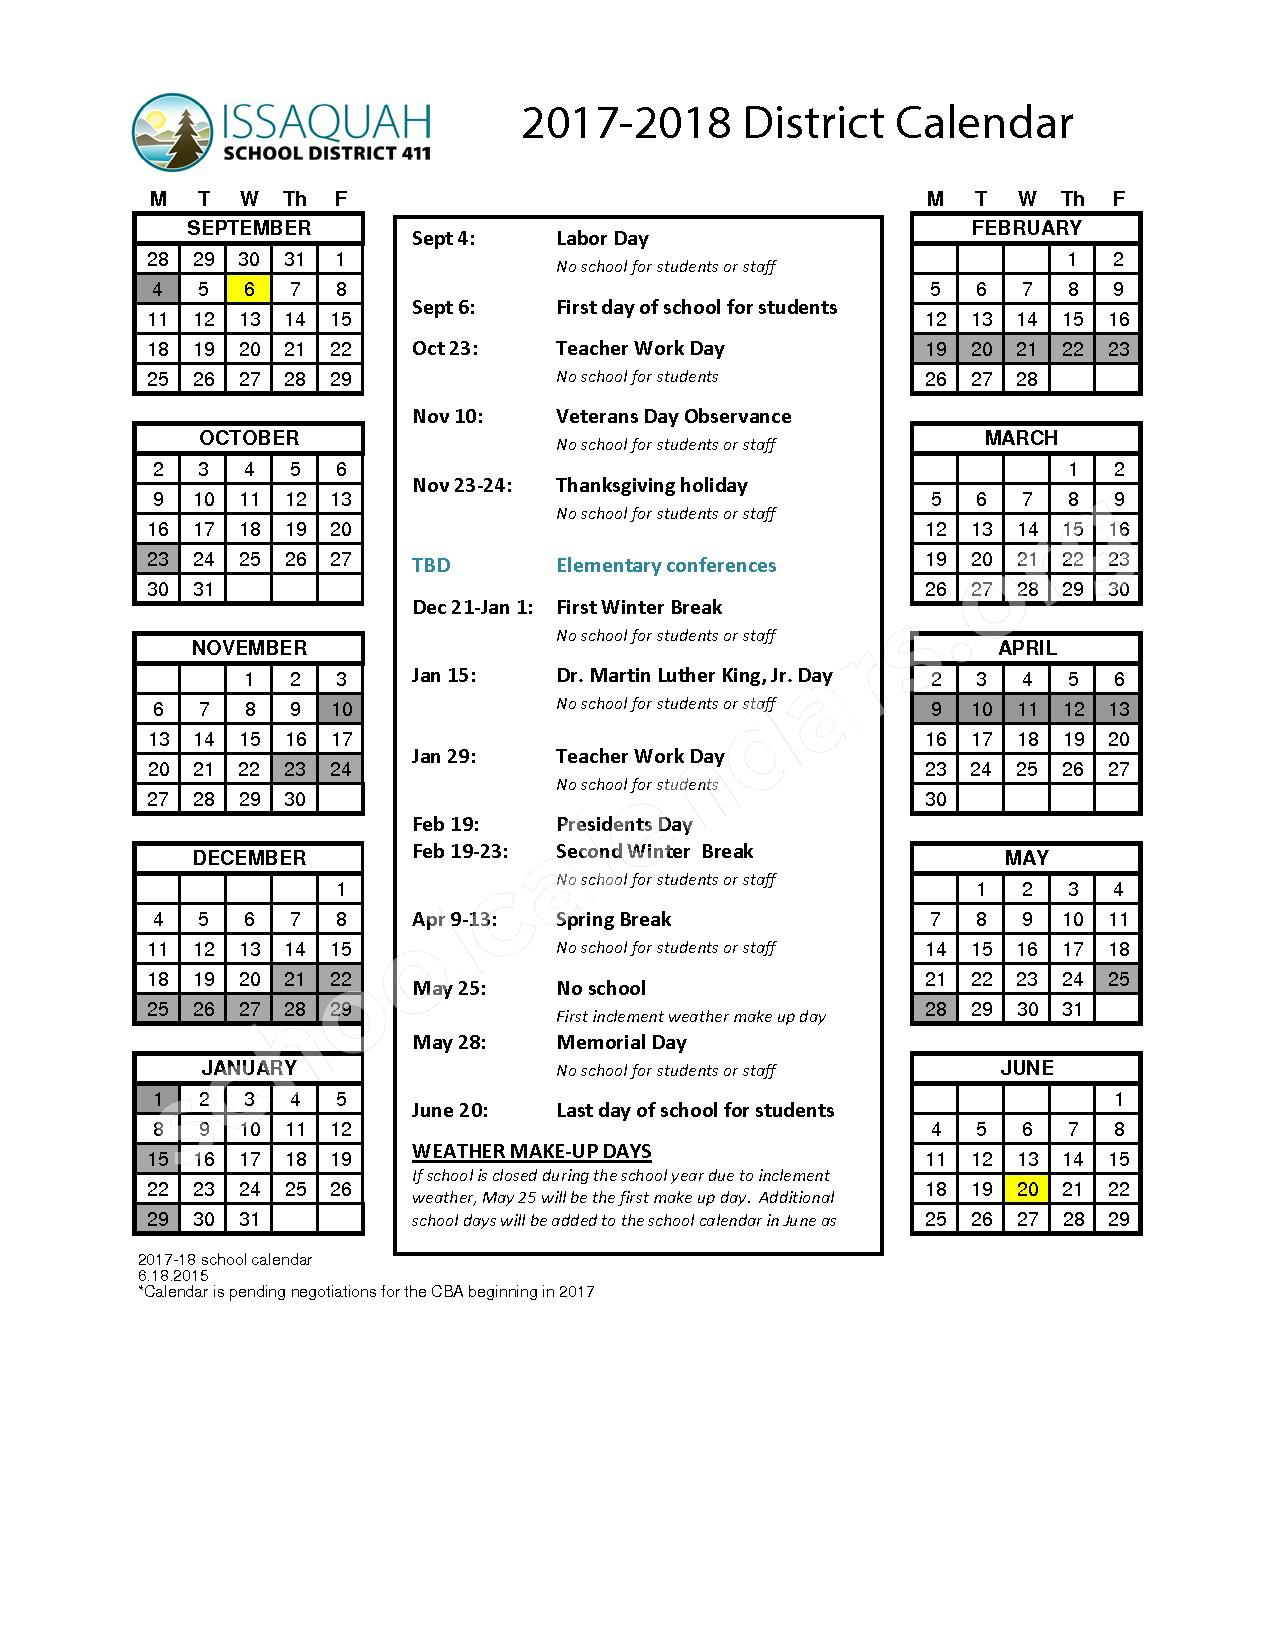 2017 - 2018 District Calendar – Issaquah School District – page 1